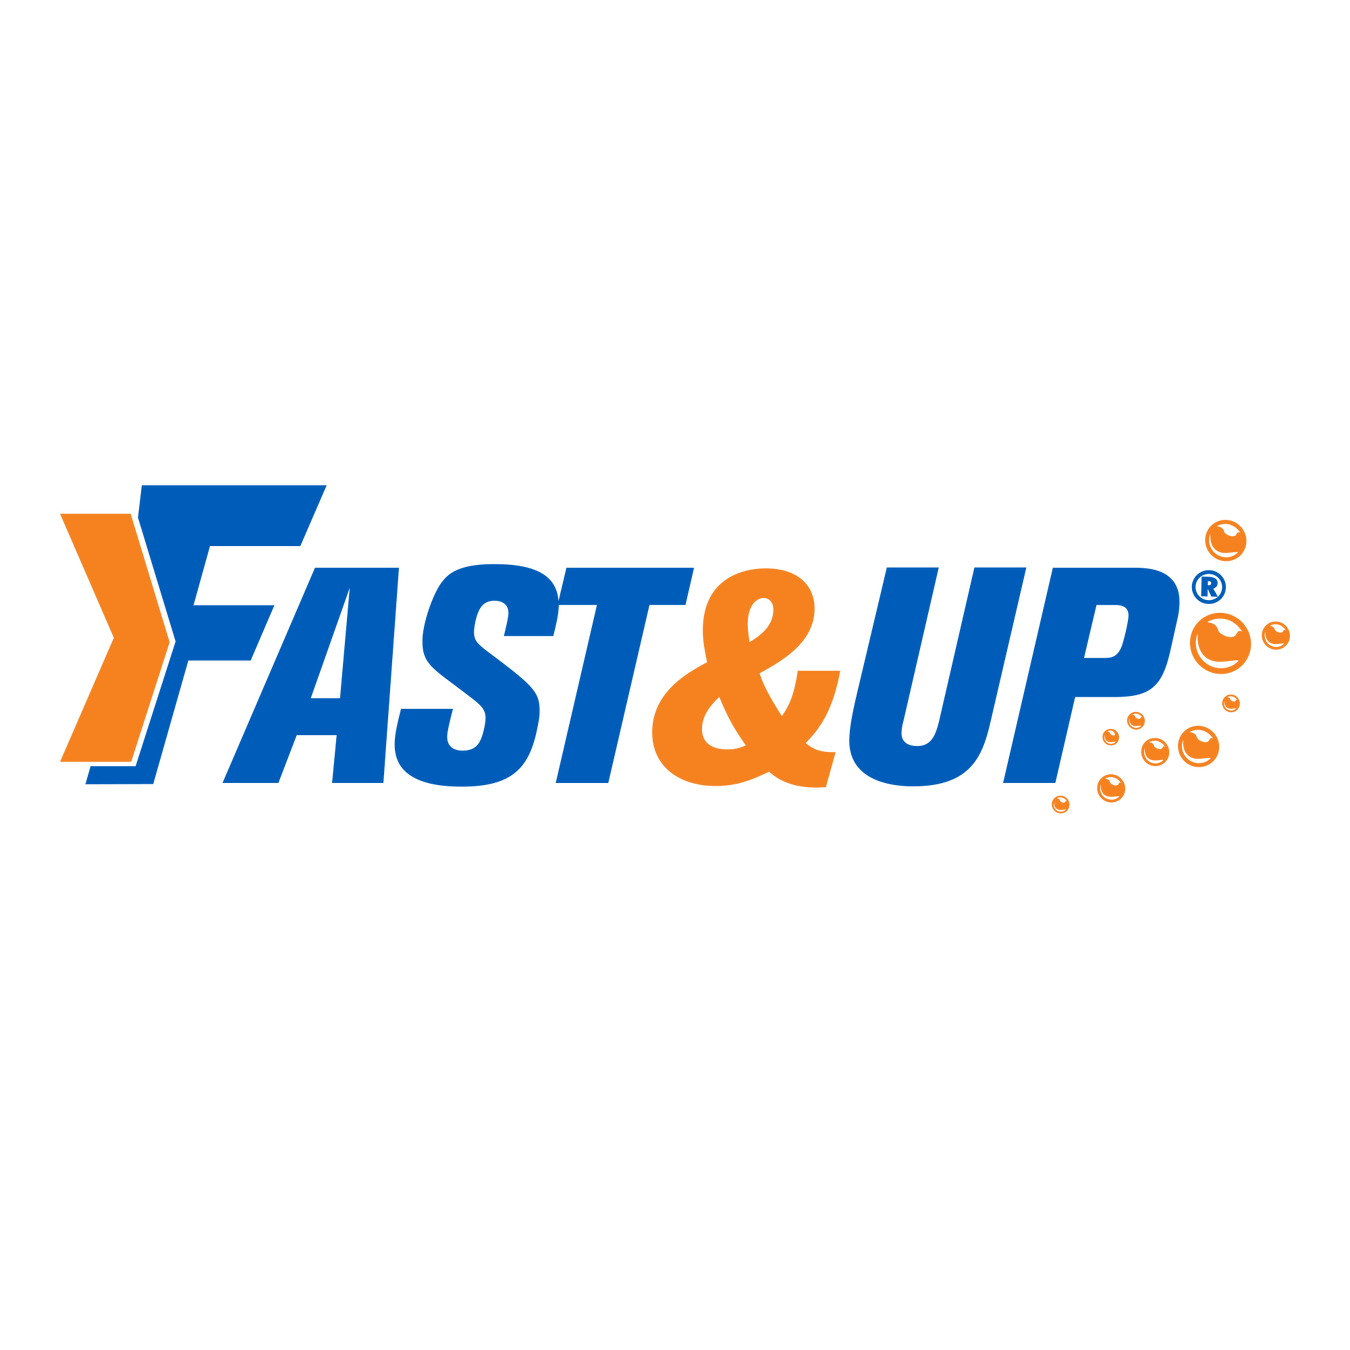 Fast&Up